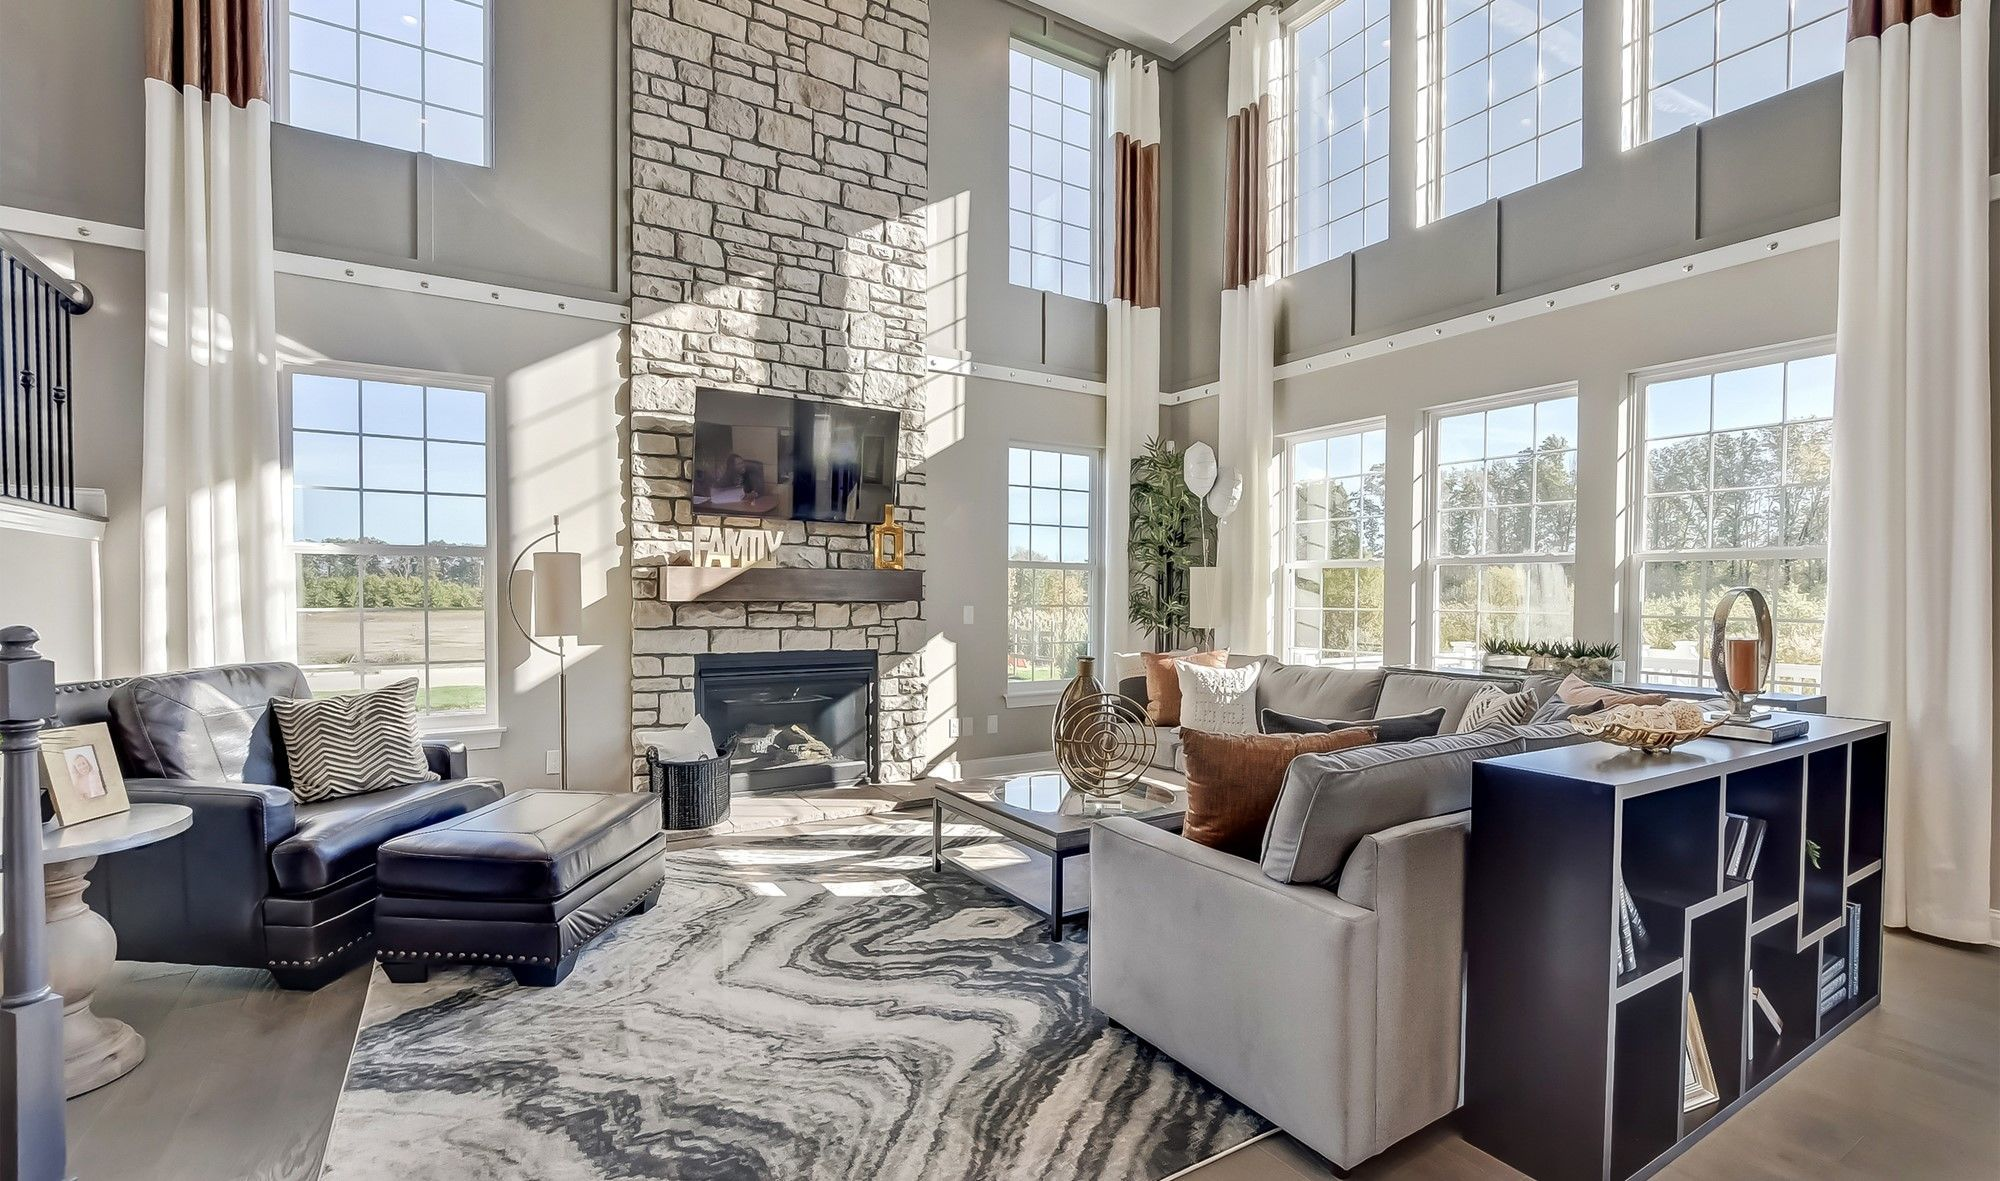 Image Result For K Hovnanian 2 Story Great Room Outdoor